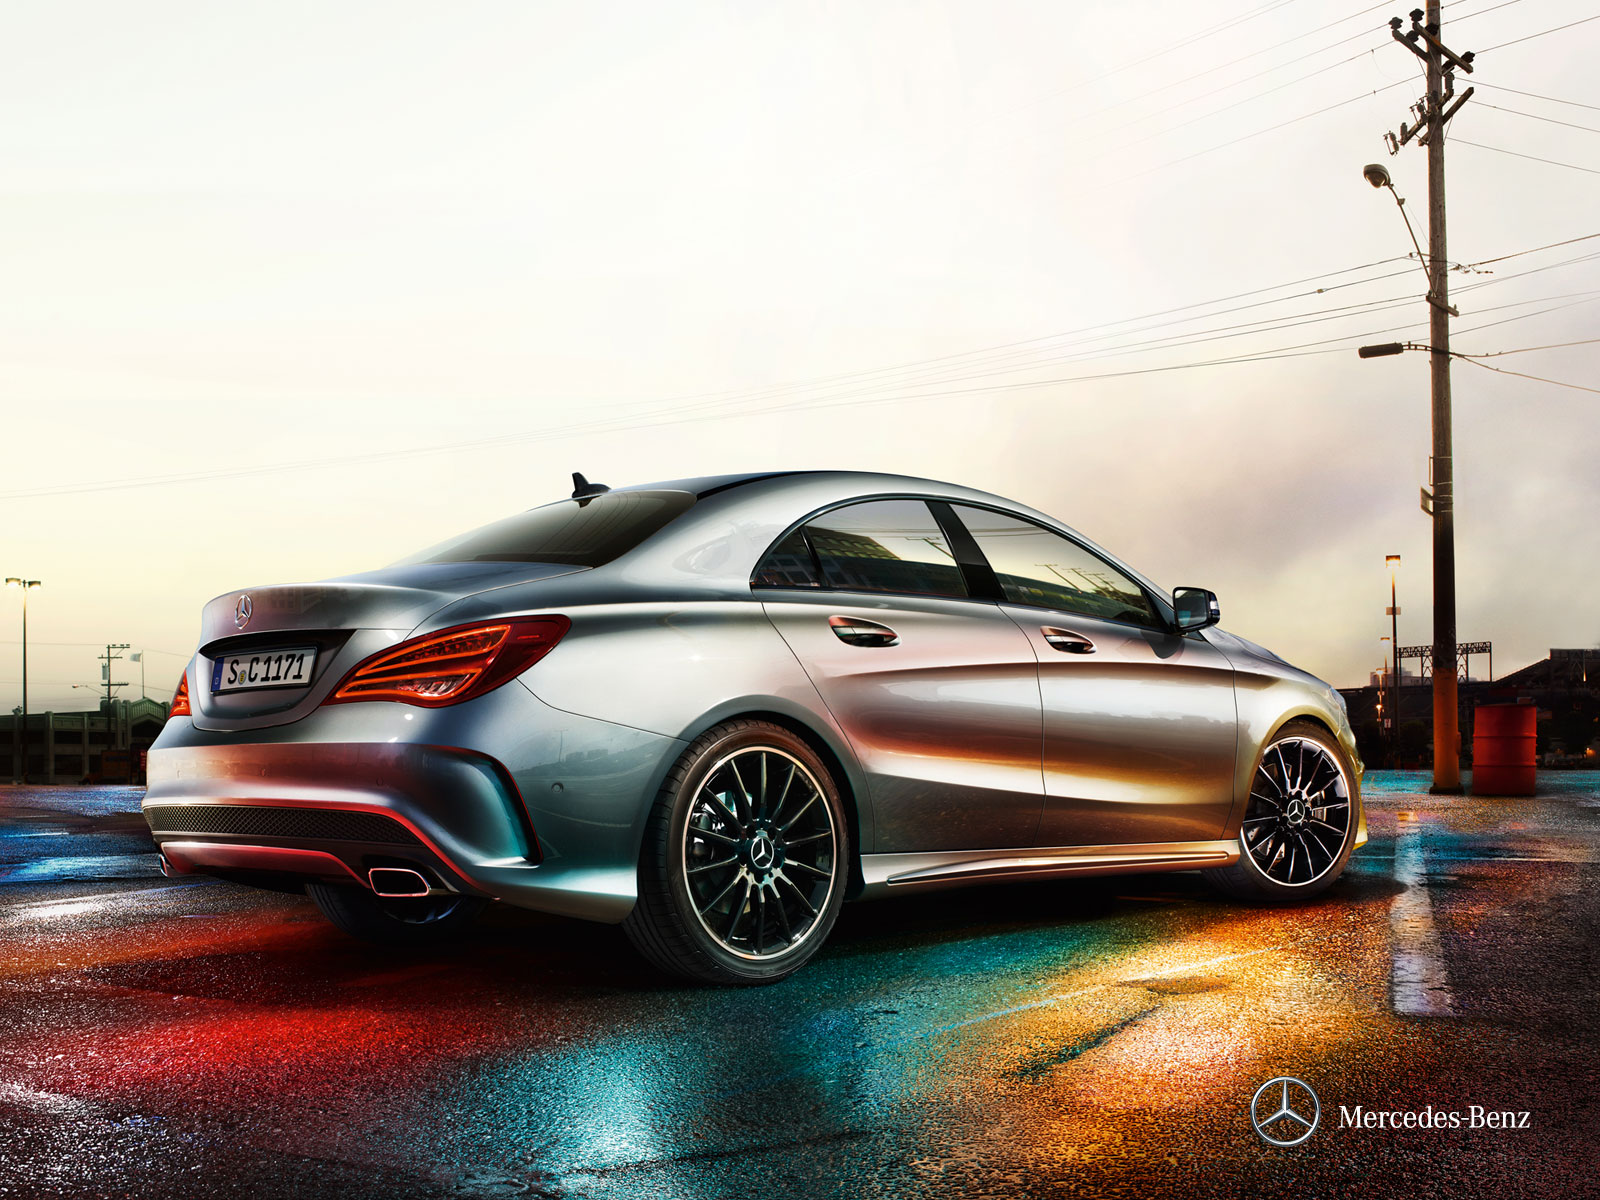 2014 Mercedes CLA45 AMG in Mountain Grey